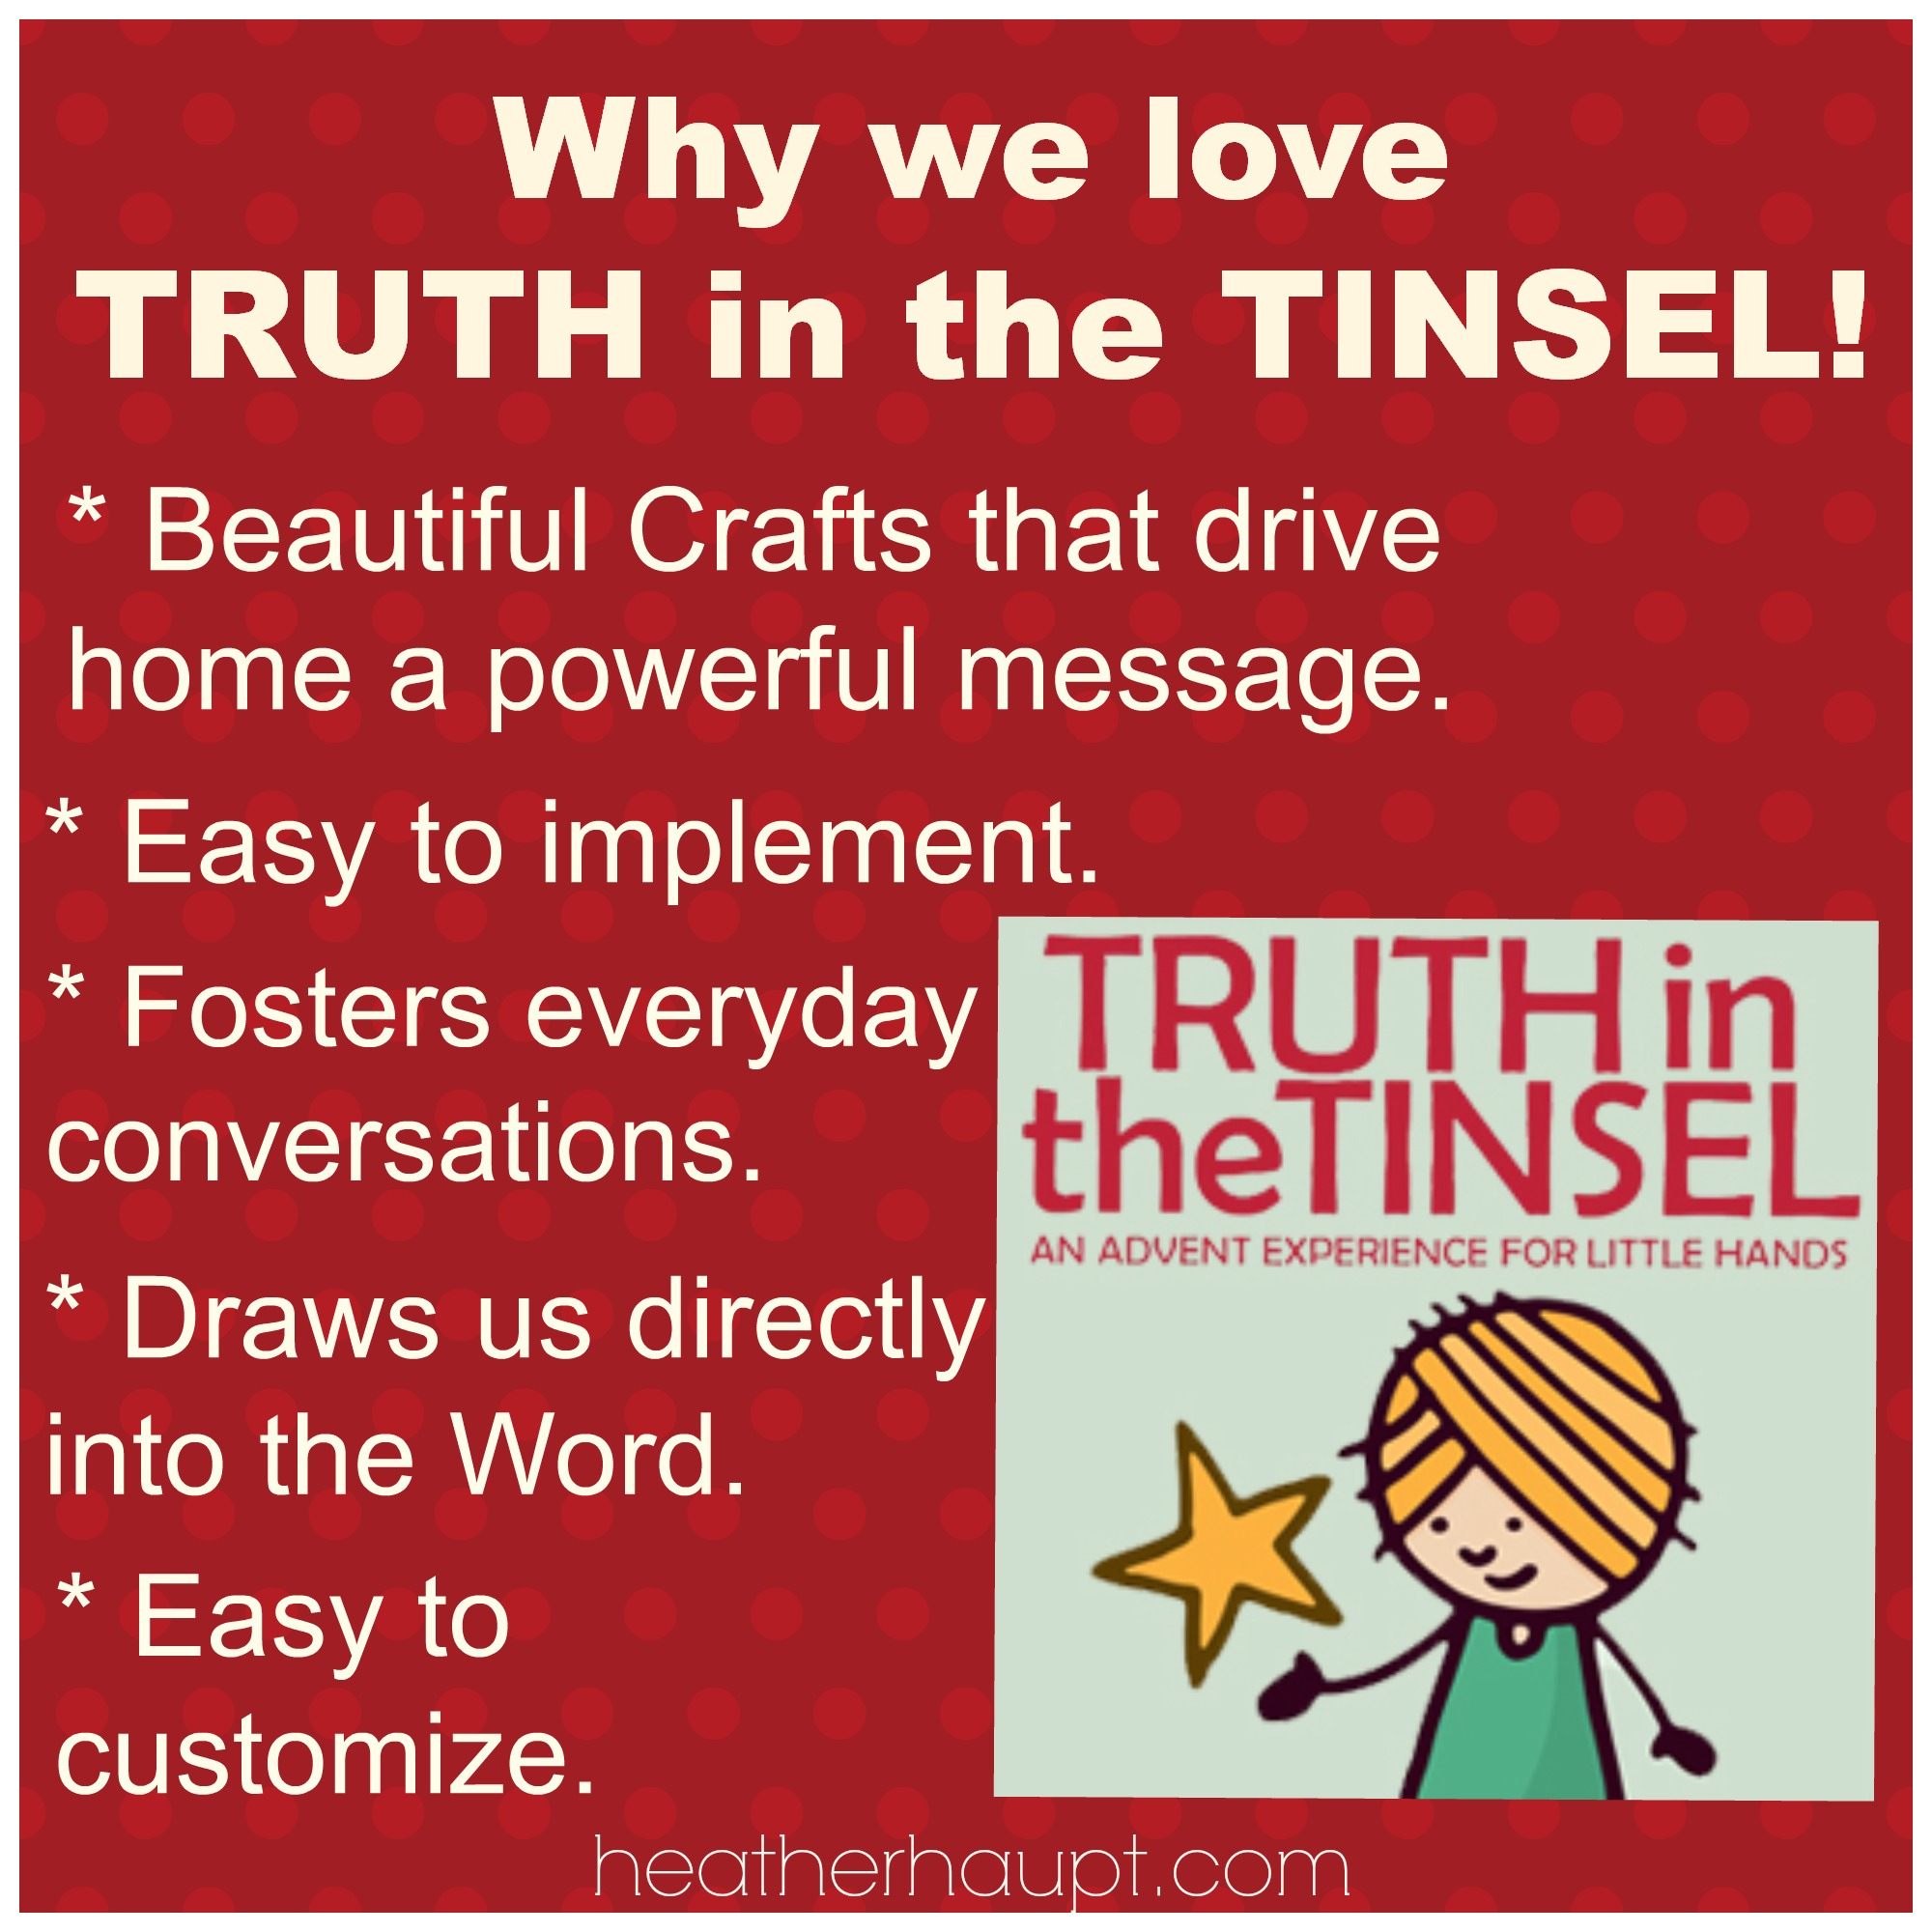 Truth in the Tinsel 2014